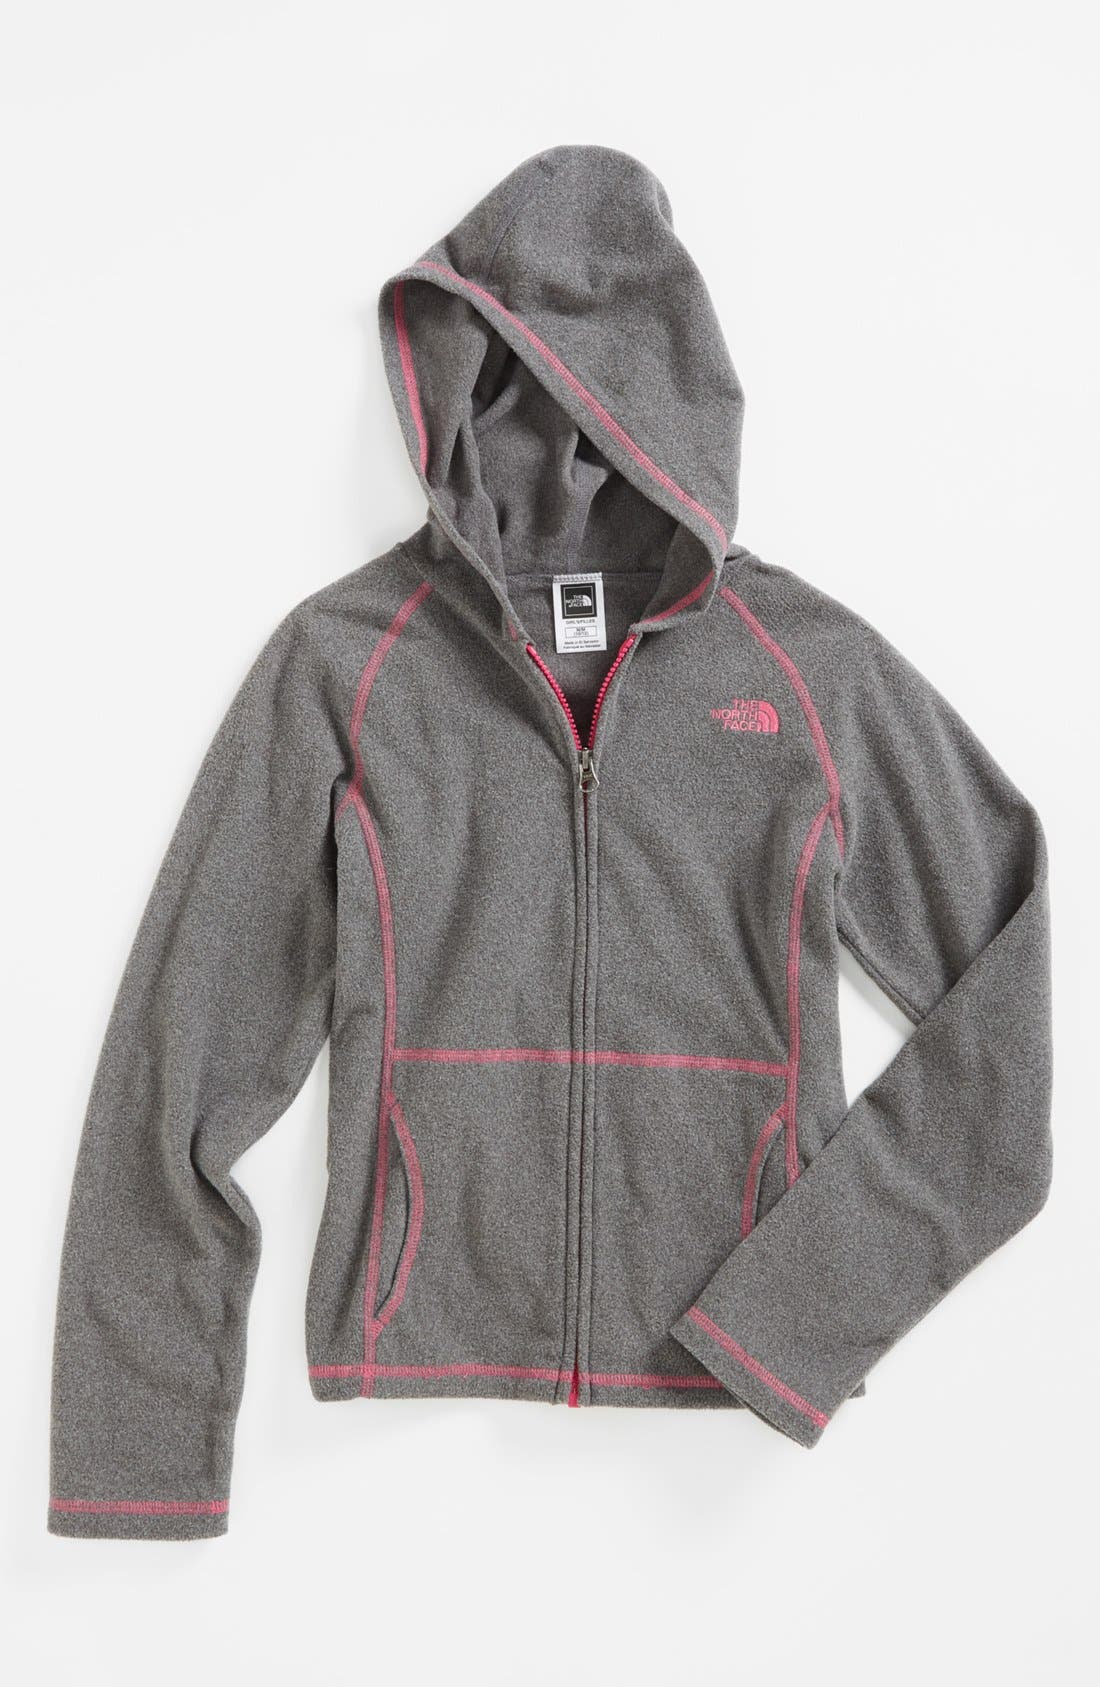 Alternate Image 1 Selected - The North Face 'Glacier' Full Zip Hoodie (Little Girls & Big Girls)